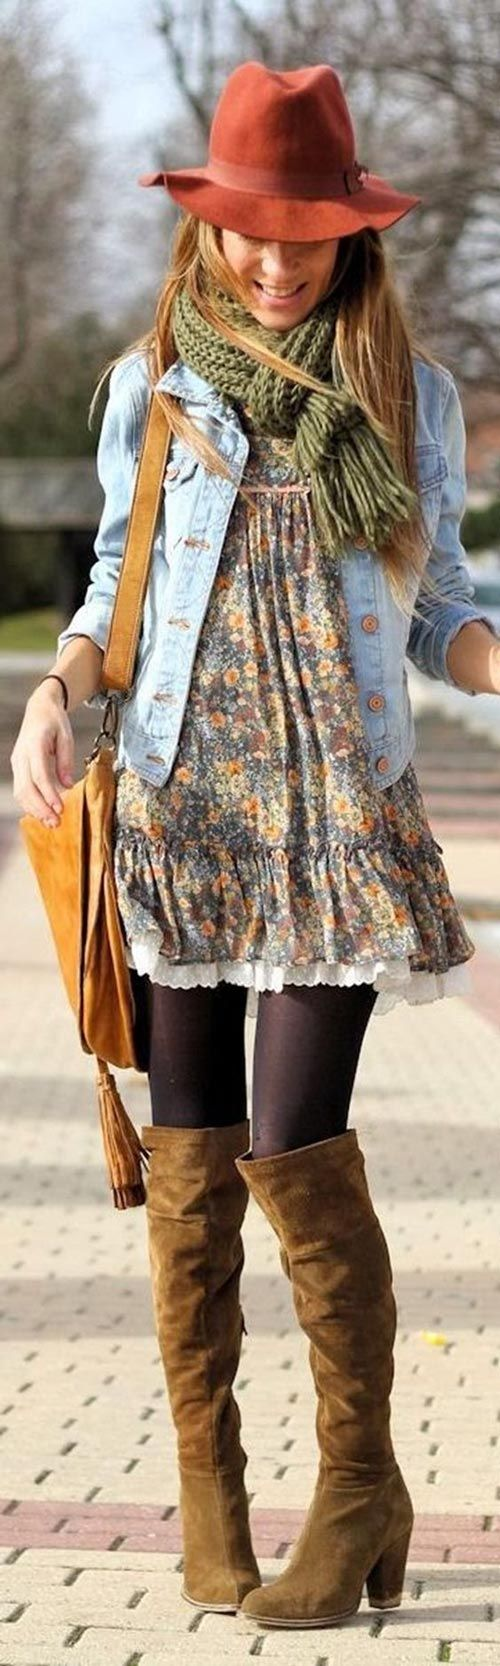 Fall outfit-denim jacket #outfit #fashion #womentriangle